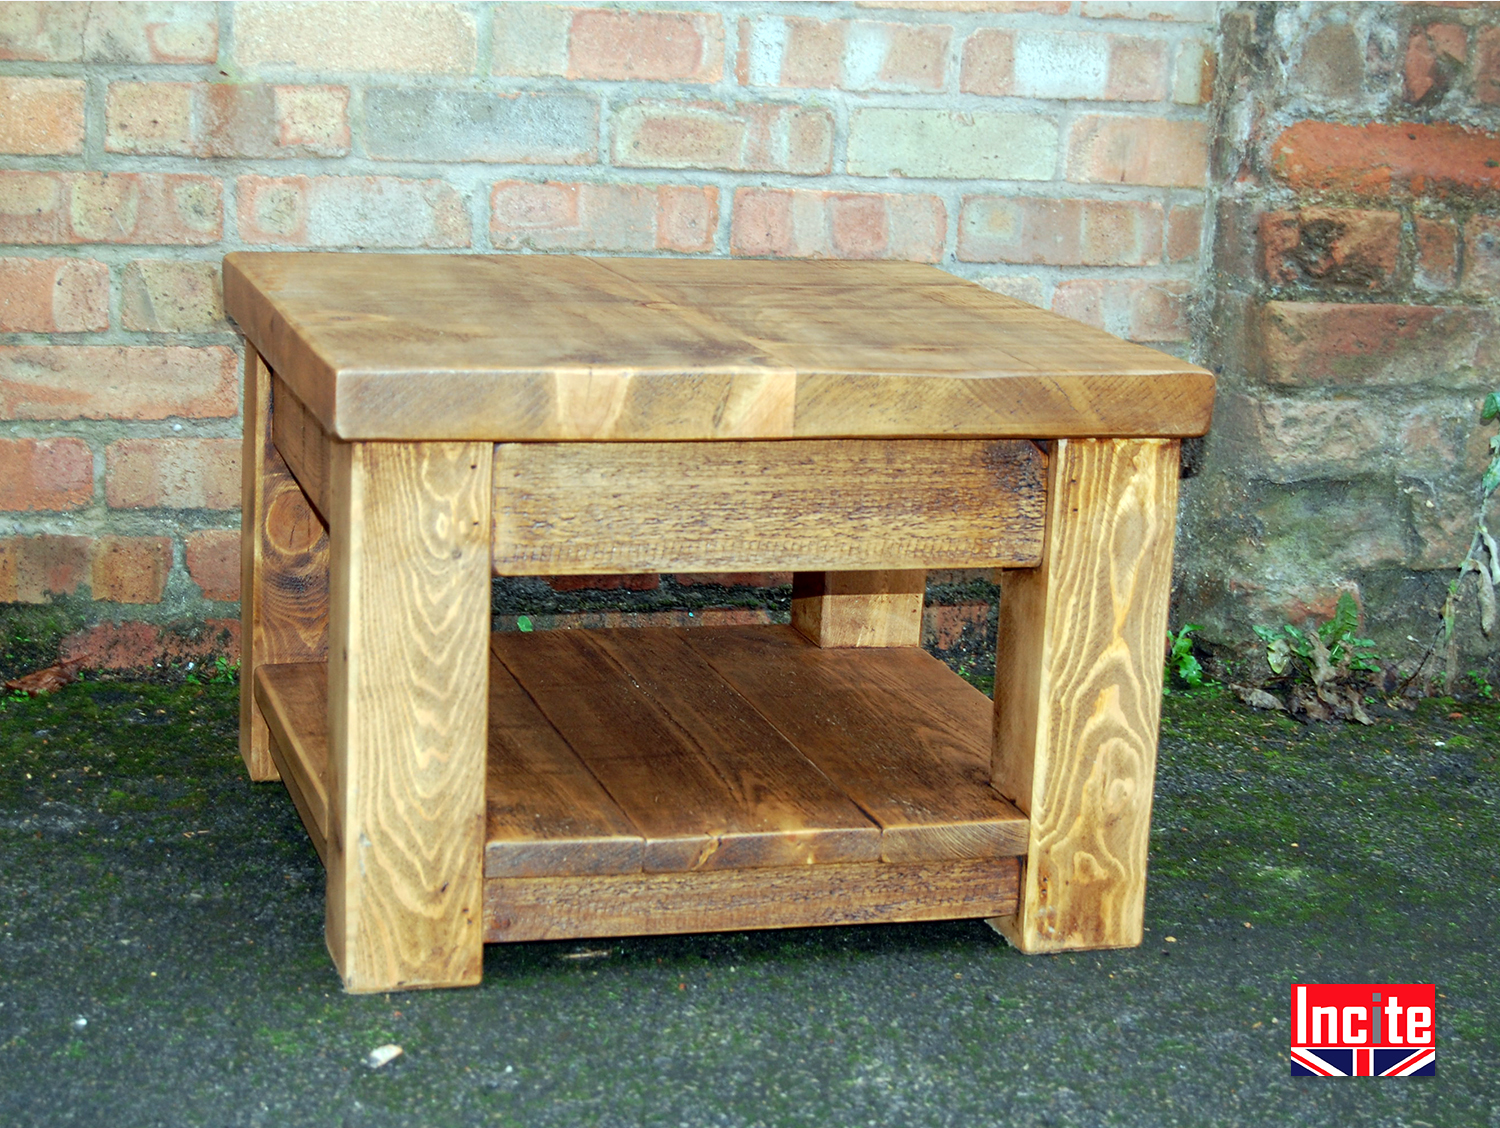 Plank Bedroom Furniture Rustic Plank Pine Coffee Tables By Incite Interiors Derby